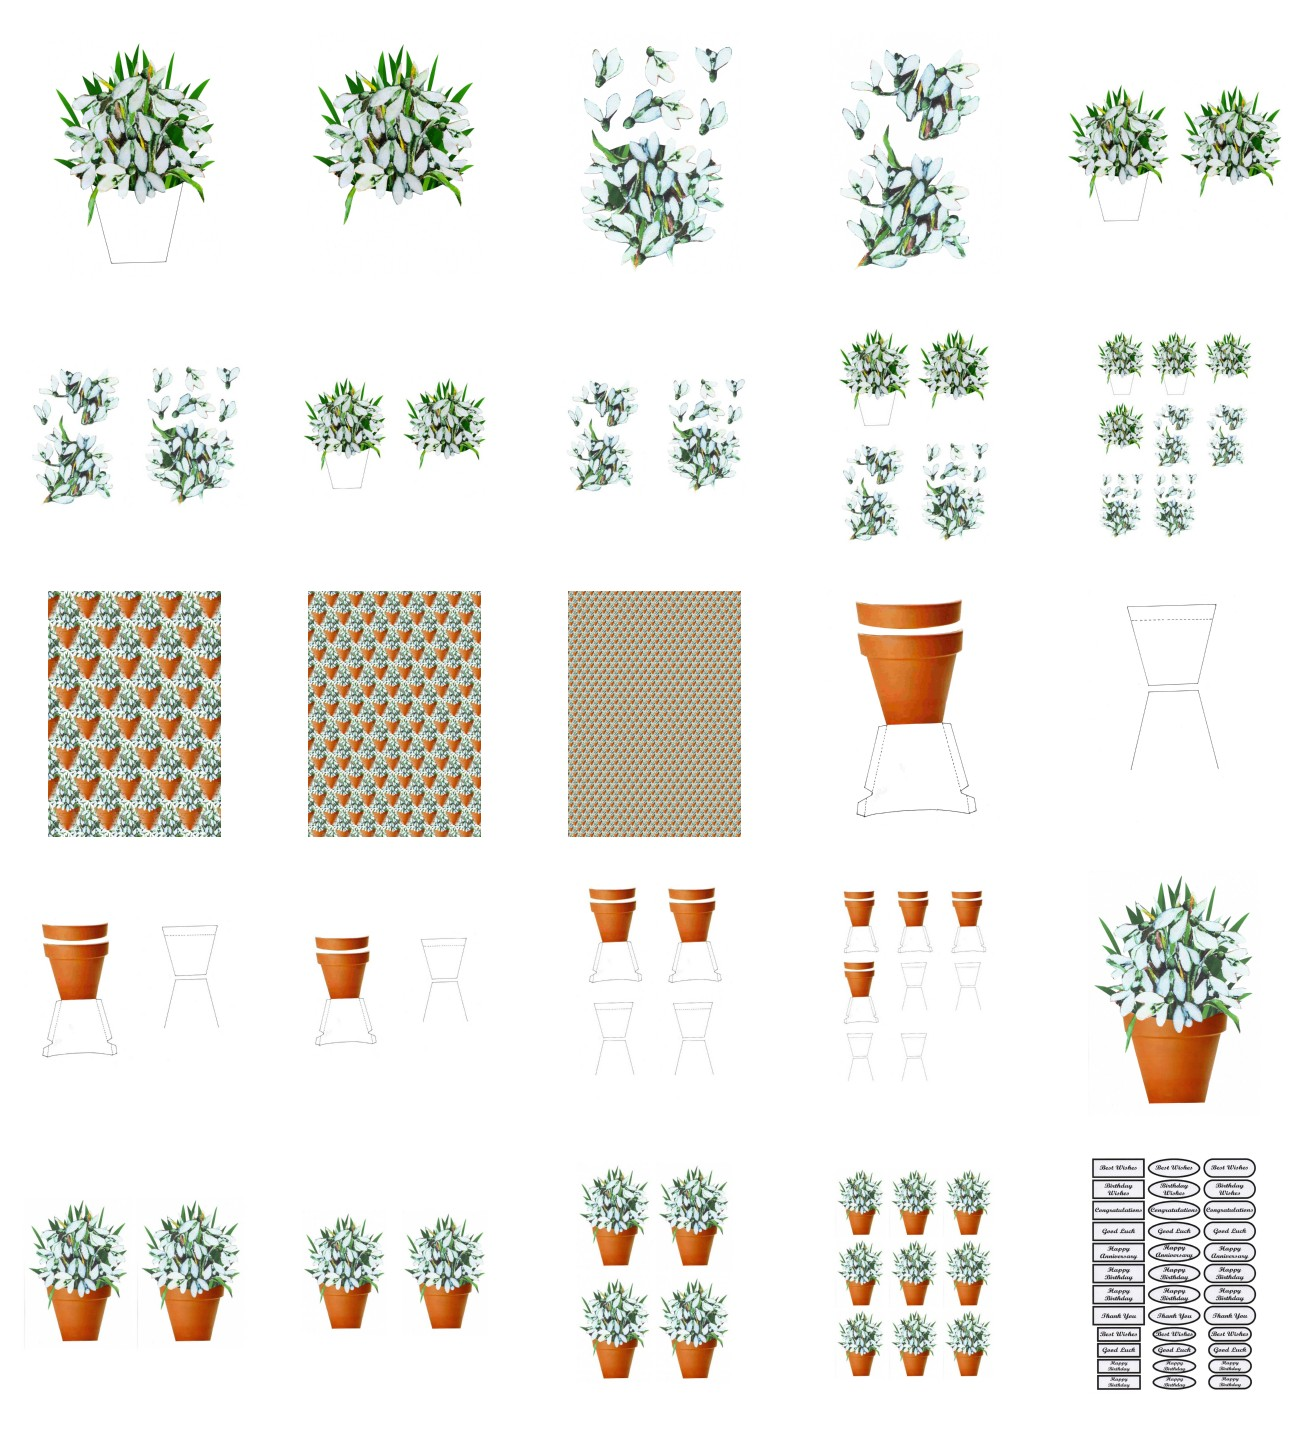 Spring Snowdrop Flowers Set 02 - 25 Pages to Download